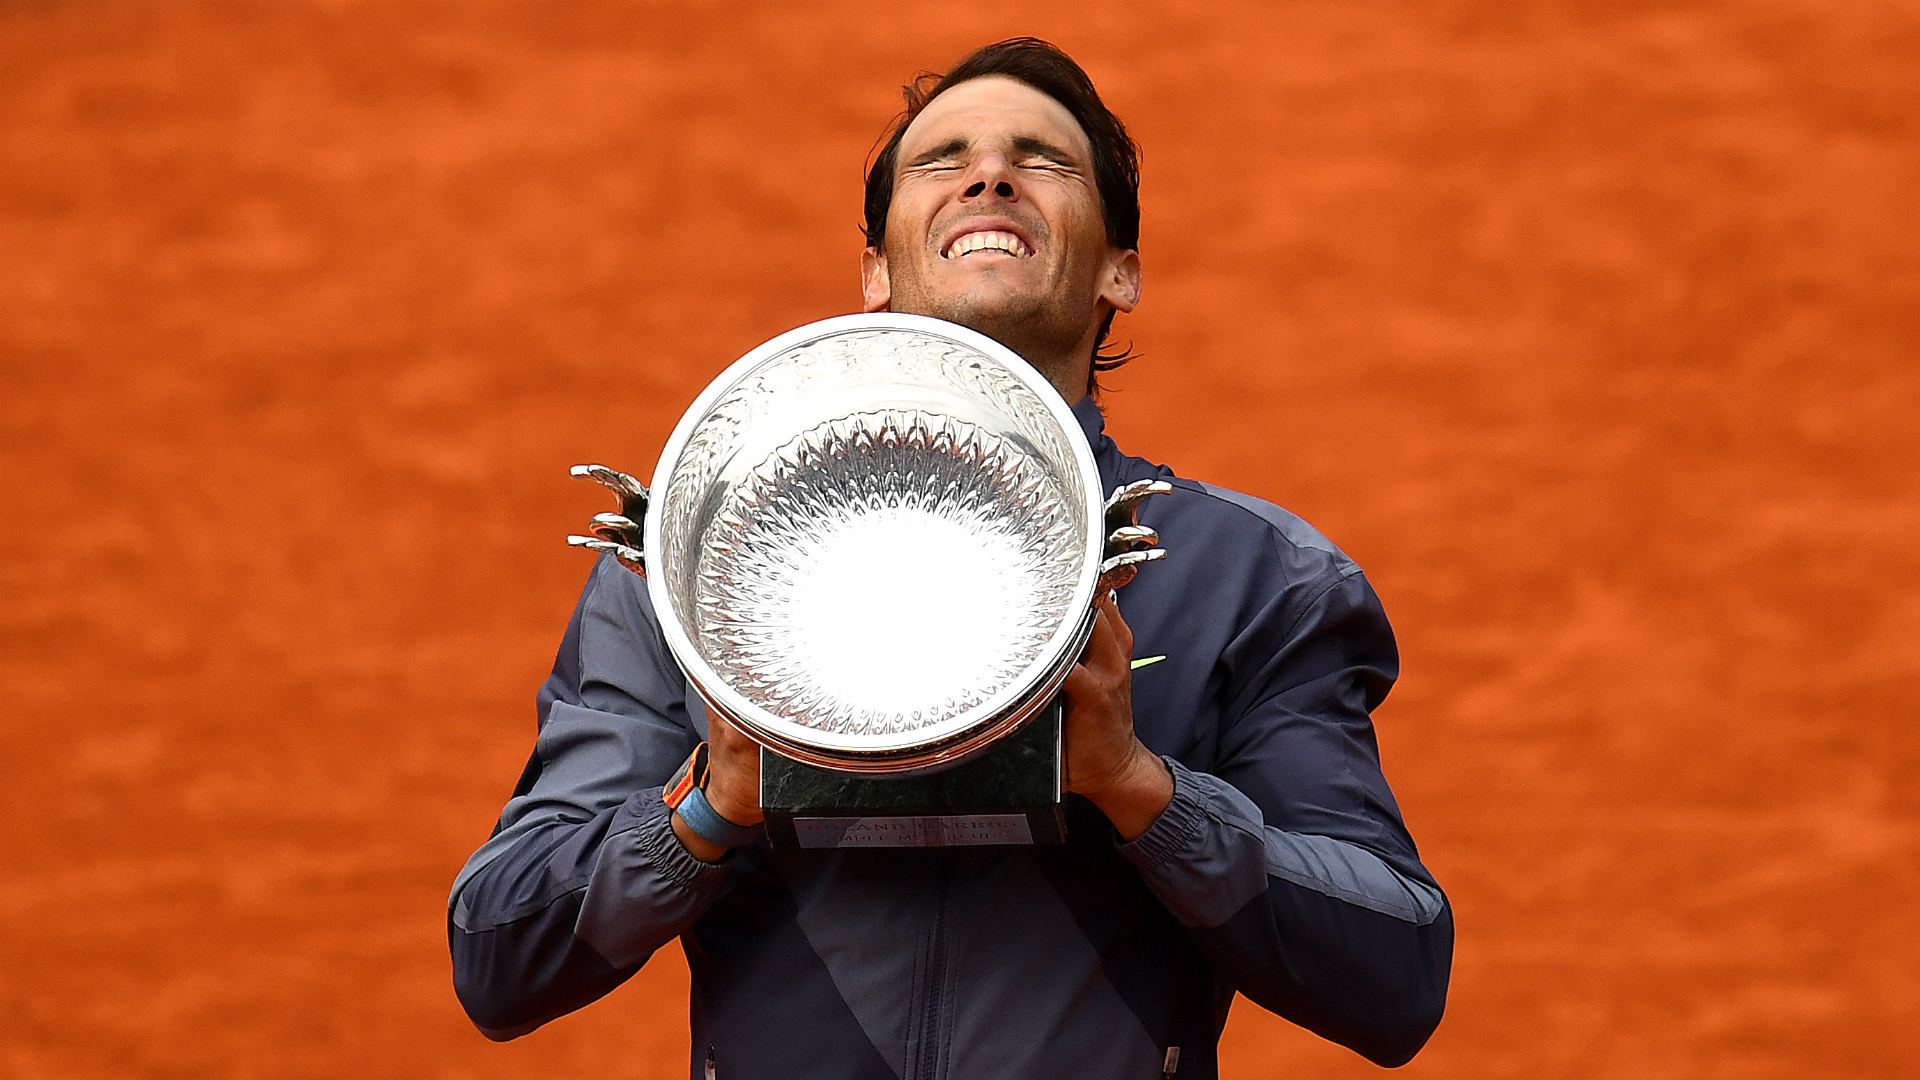 When the 2020 tournament begins in September, French Open organisers hope to see Roland Garros at least half full.